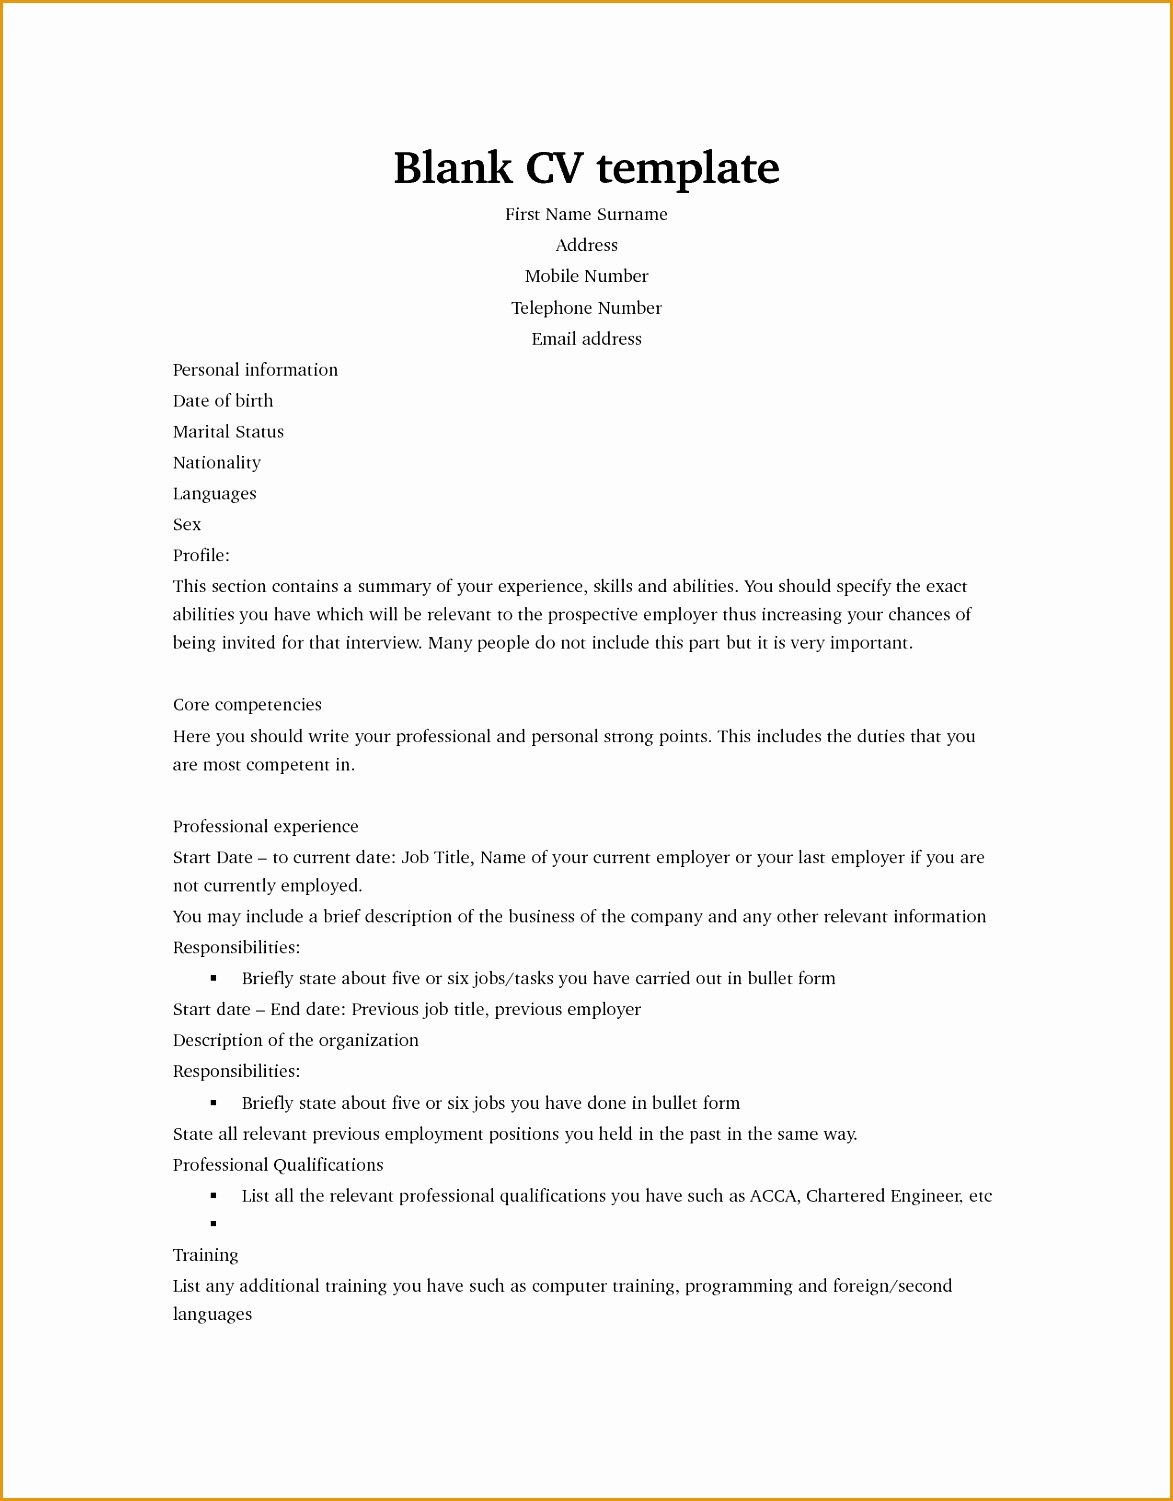 free blank resume templates and inspiration to create a good resume 4